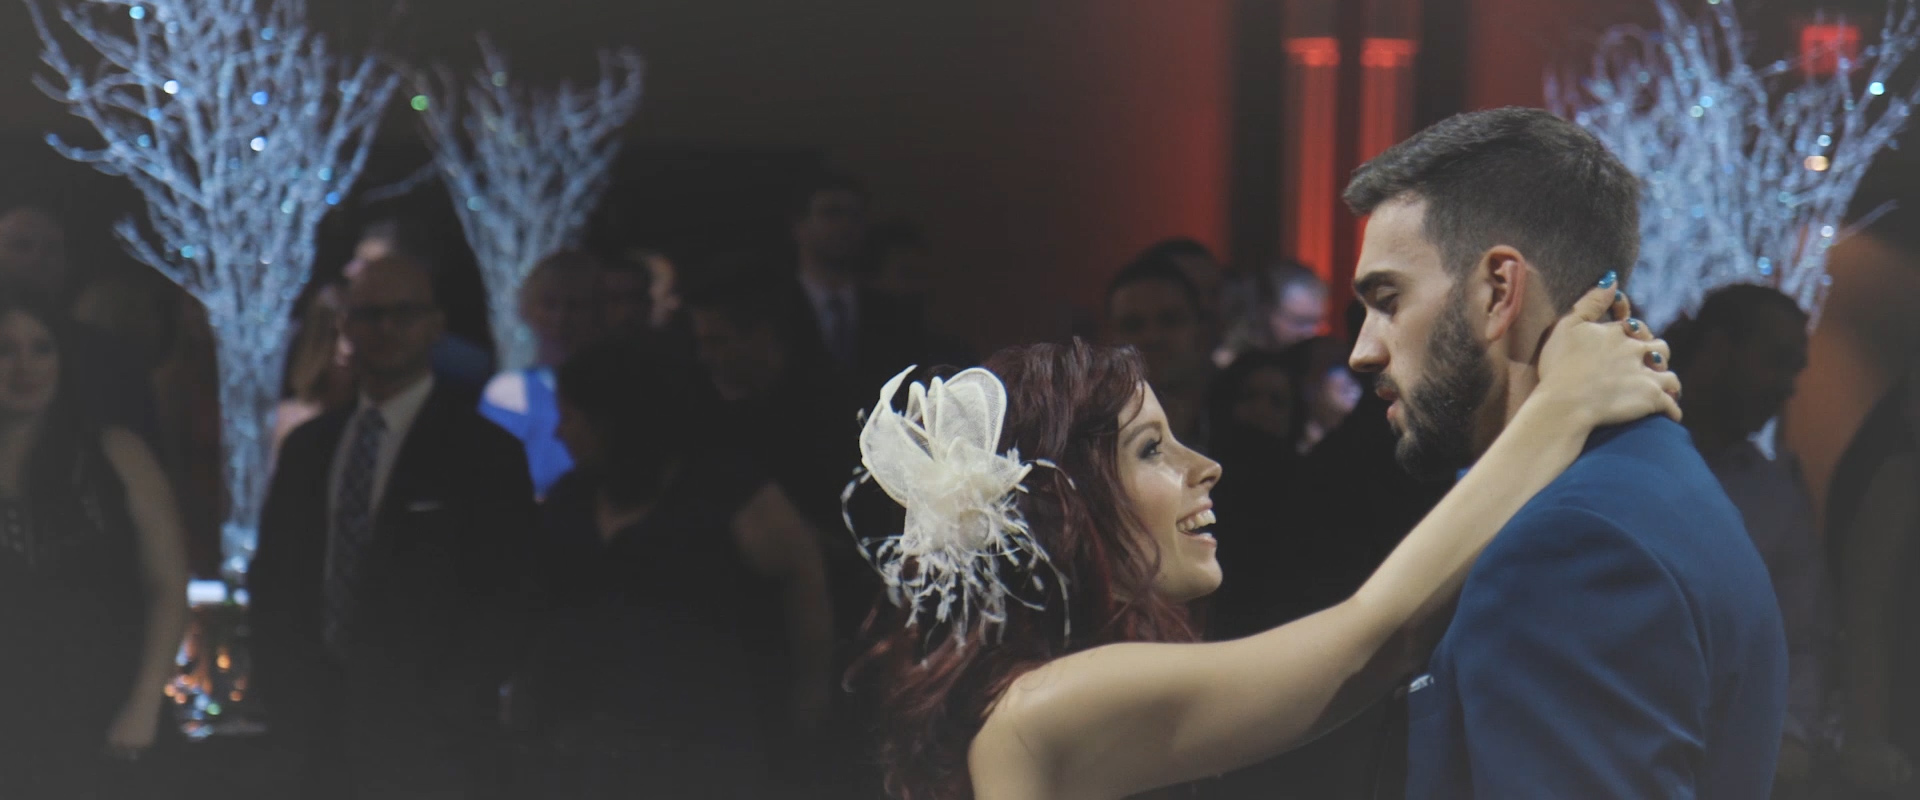 An image of a bride and groom during their first dance; taken from a Toronto Wedding Video